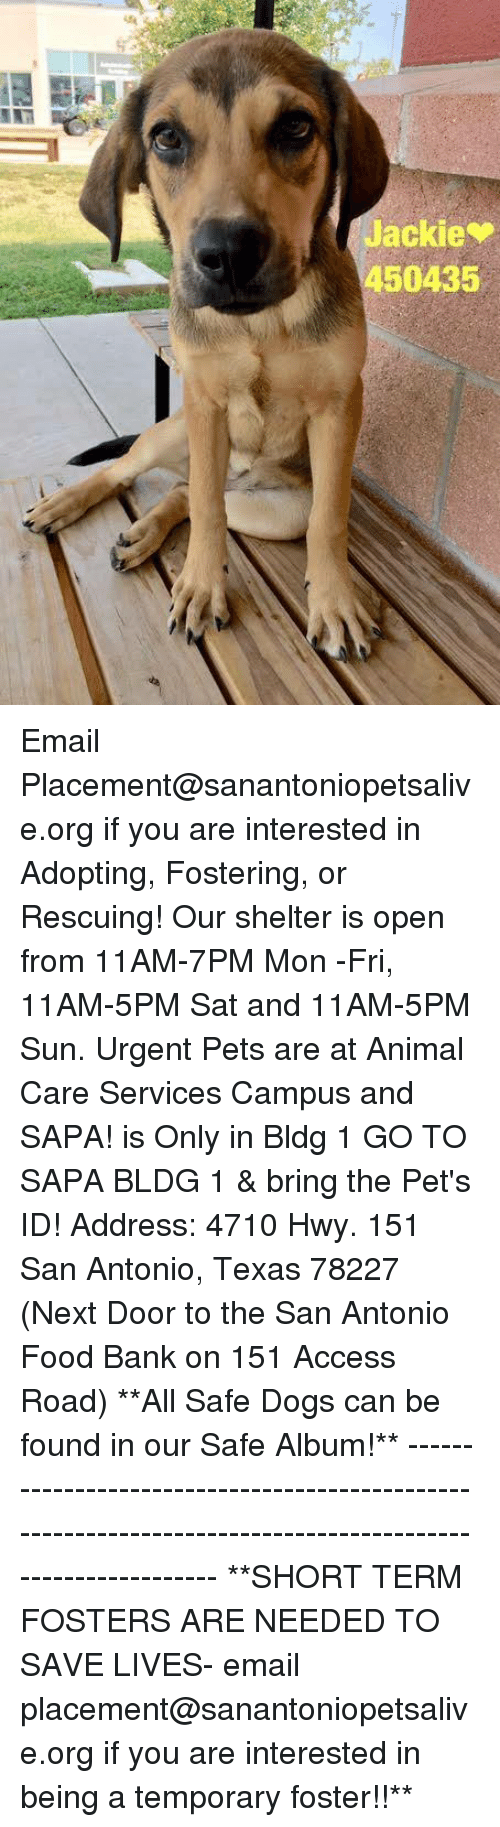 shortness: Jackie  450435 Email Placement@sanantoniopetsalive.org if you are interested in Adopting, Fostering, or Rescuing!  Our shelter is open from 11AM-7PM Mon -Fri, 11AM-5PM Sat and 11AM-5PM Sun.  Urgent Pets are at Animal Care Services Campus and SAPA! is Only in Bldg 1 GO TO SAPA BLDG 1 & bring the Pet's ID! Address: 4710 Hwy. 151 San Antonio, Texas 78227 (Next Door to the San Antonio Food Bank on 151 Access Road)  **All Safe Dogs can be found in our Safe Album!** ---------------------------------------------------------------------------------------------------------- **SHORT TERM FOSTERS ARE NEEDED TO SAVE LIVES- email placement@sanantoniopetsalive.org if you are interested in being a temporary foster!!**